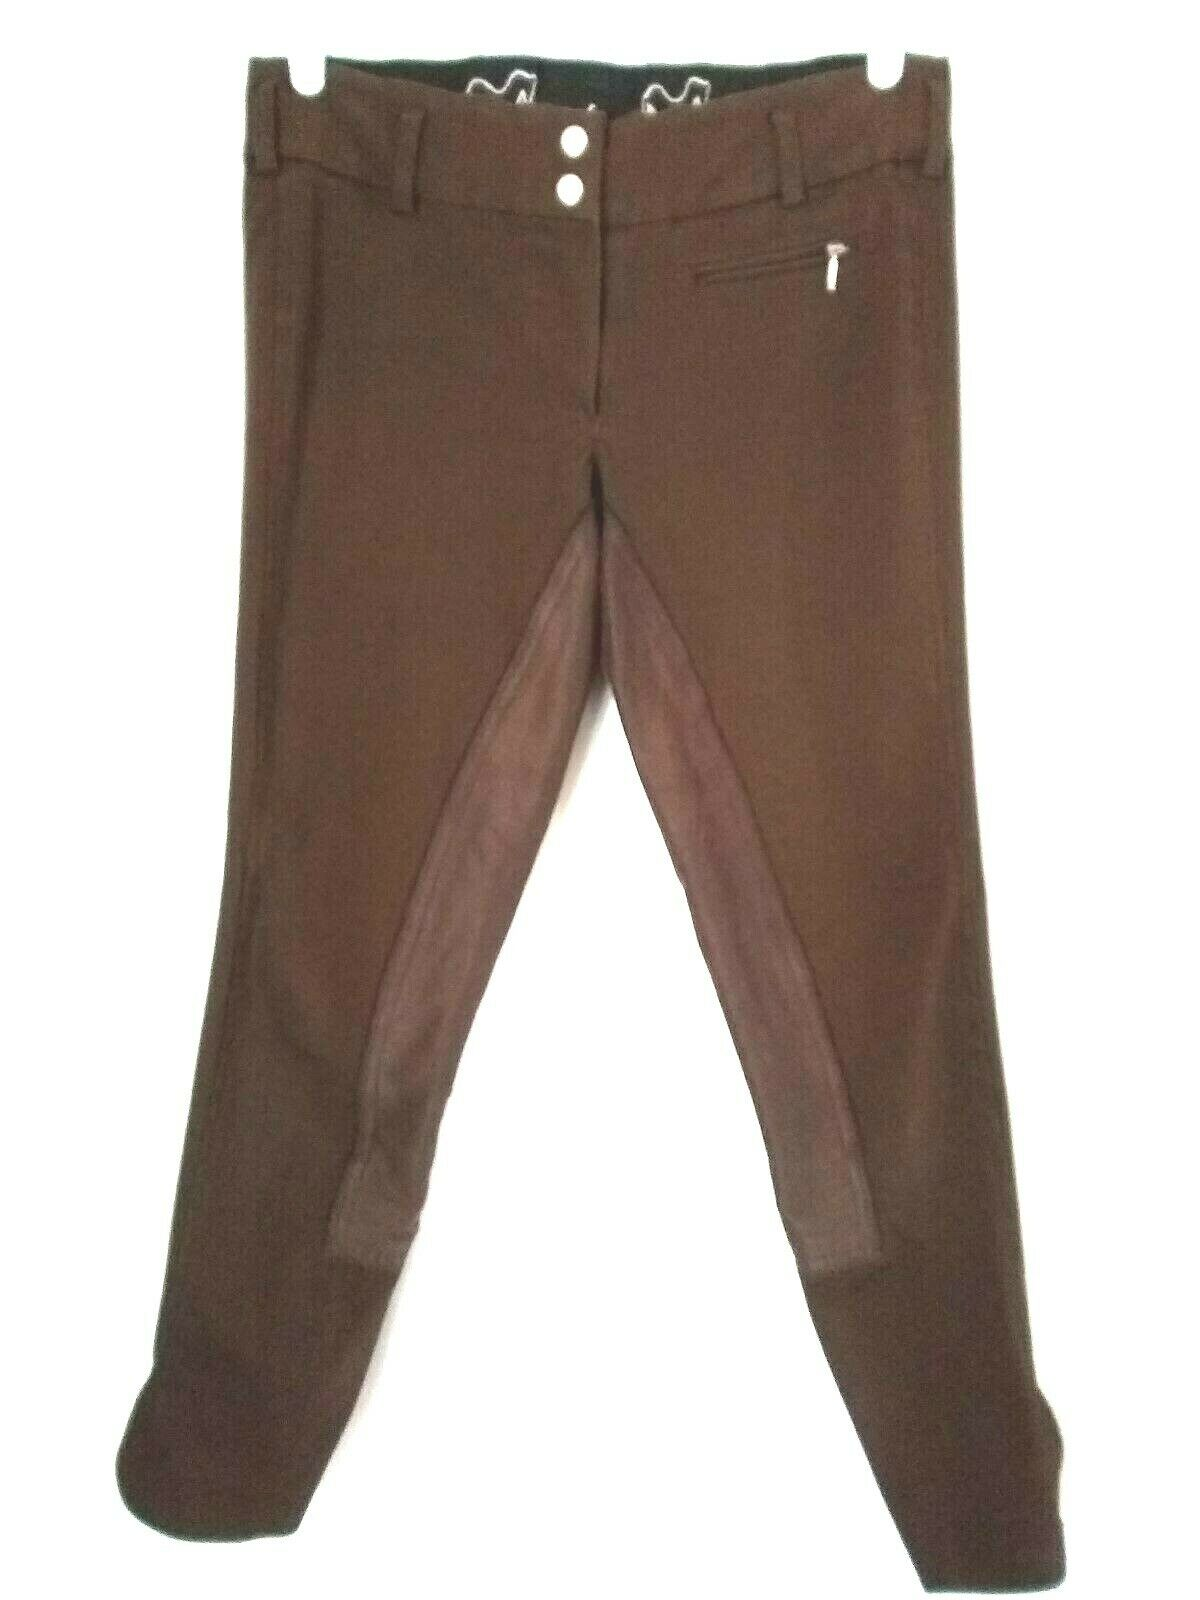 Goode Rider Womens Brown Full Seat Equestrian Riding  Breeches Size 28R  team promotions